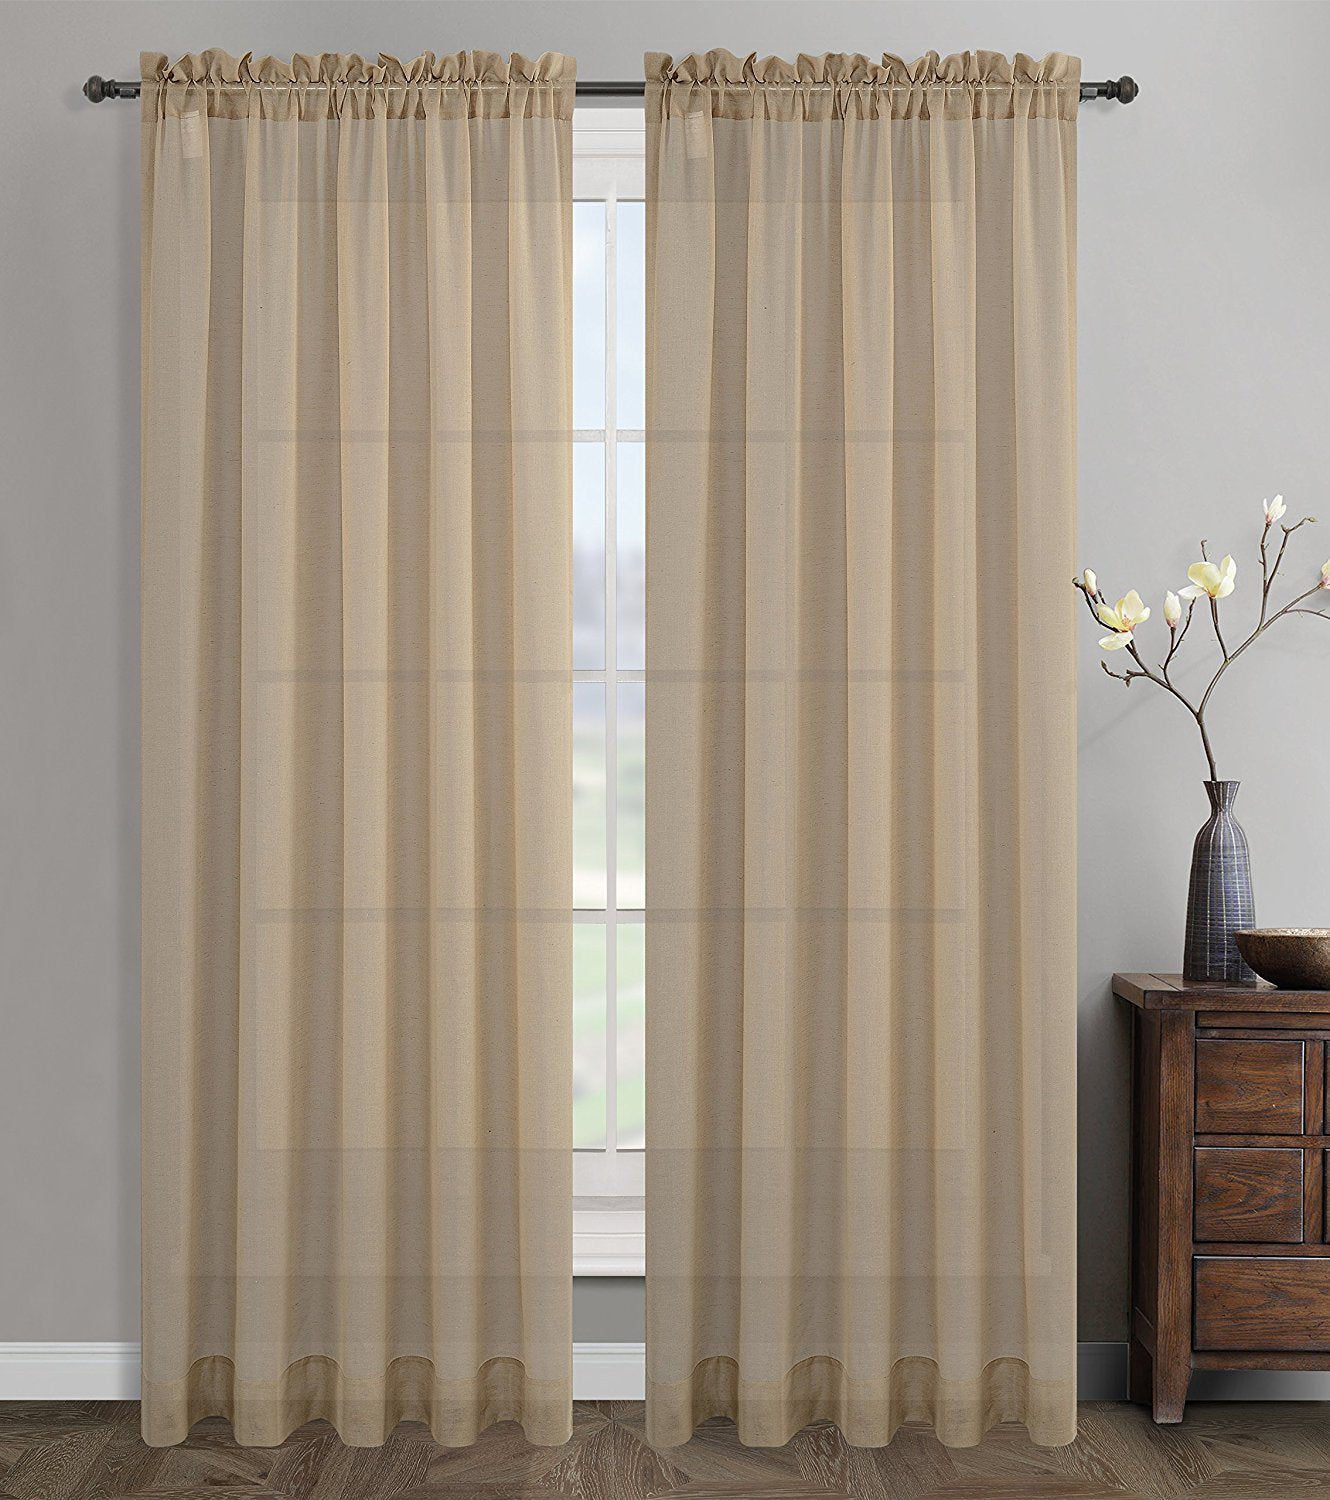 rod window solid panels sheer home products gray curtain aki pocket